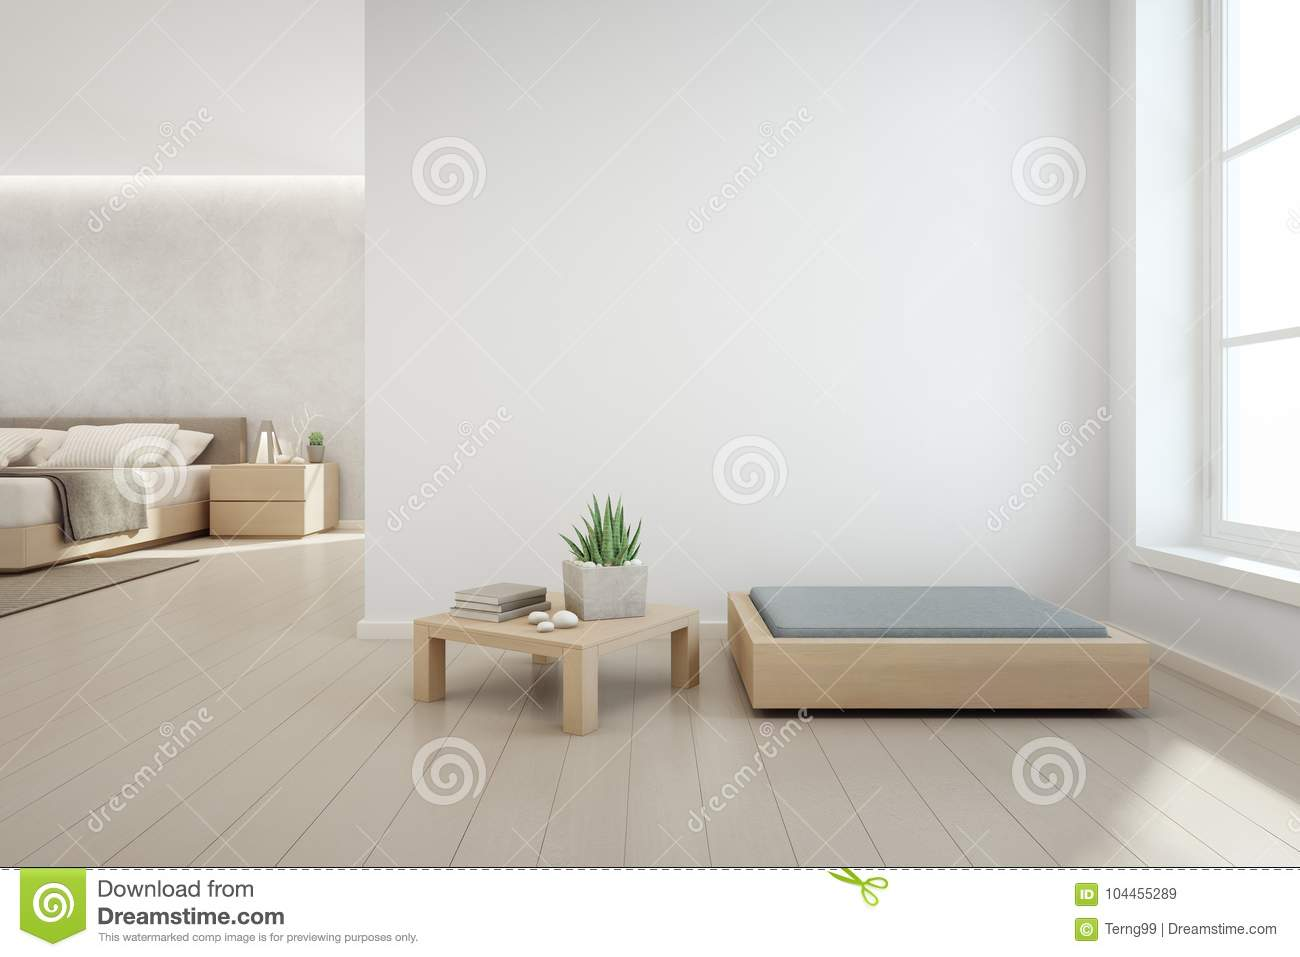 Indoor Plant On Wooden Coffee Table And Modern Furniture With Empty White Concrete Wall